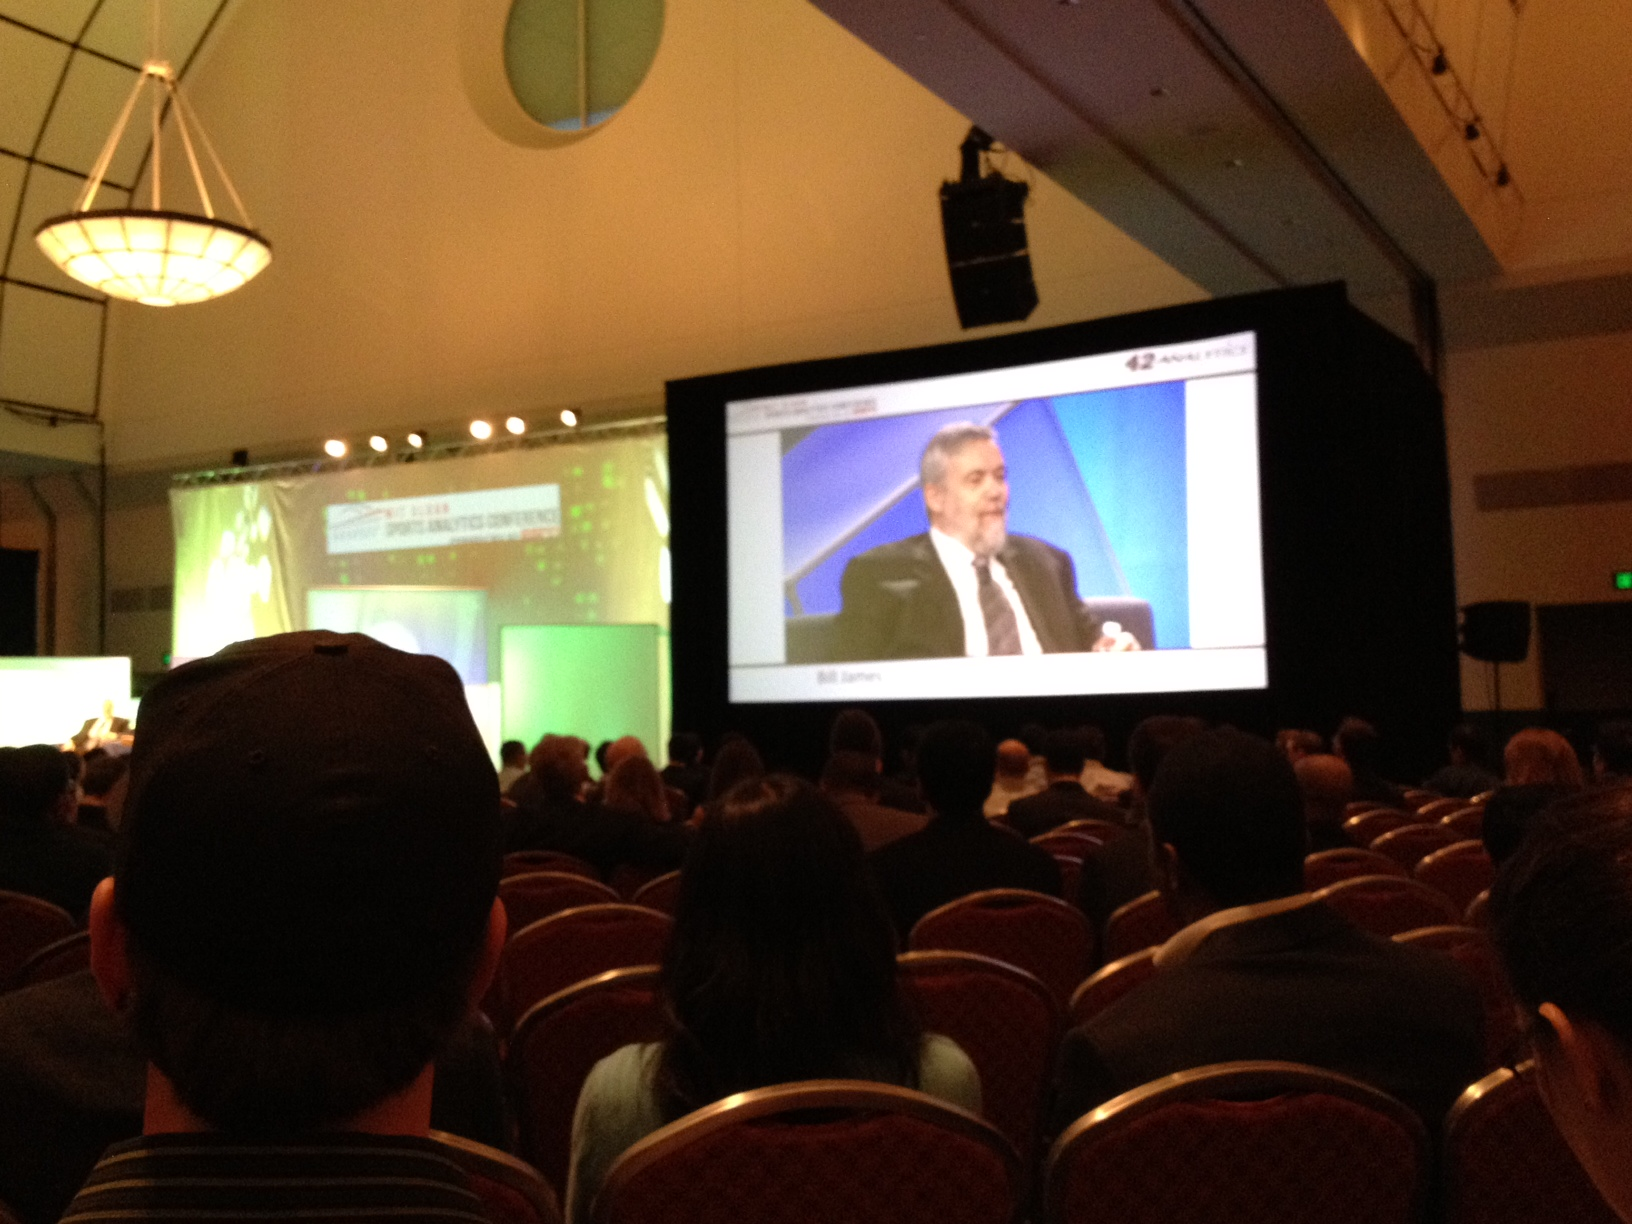 Bill James on the B.S. Report with Bill Simmons, taped live at the Sloan Sports Analytics Conference